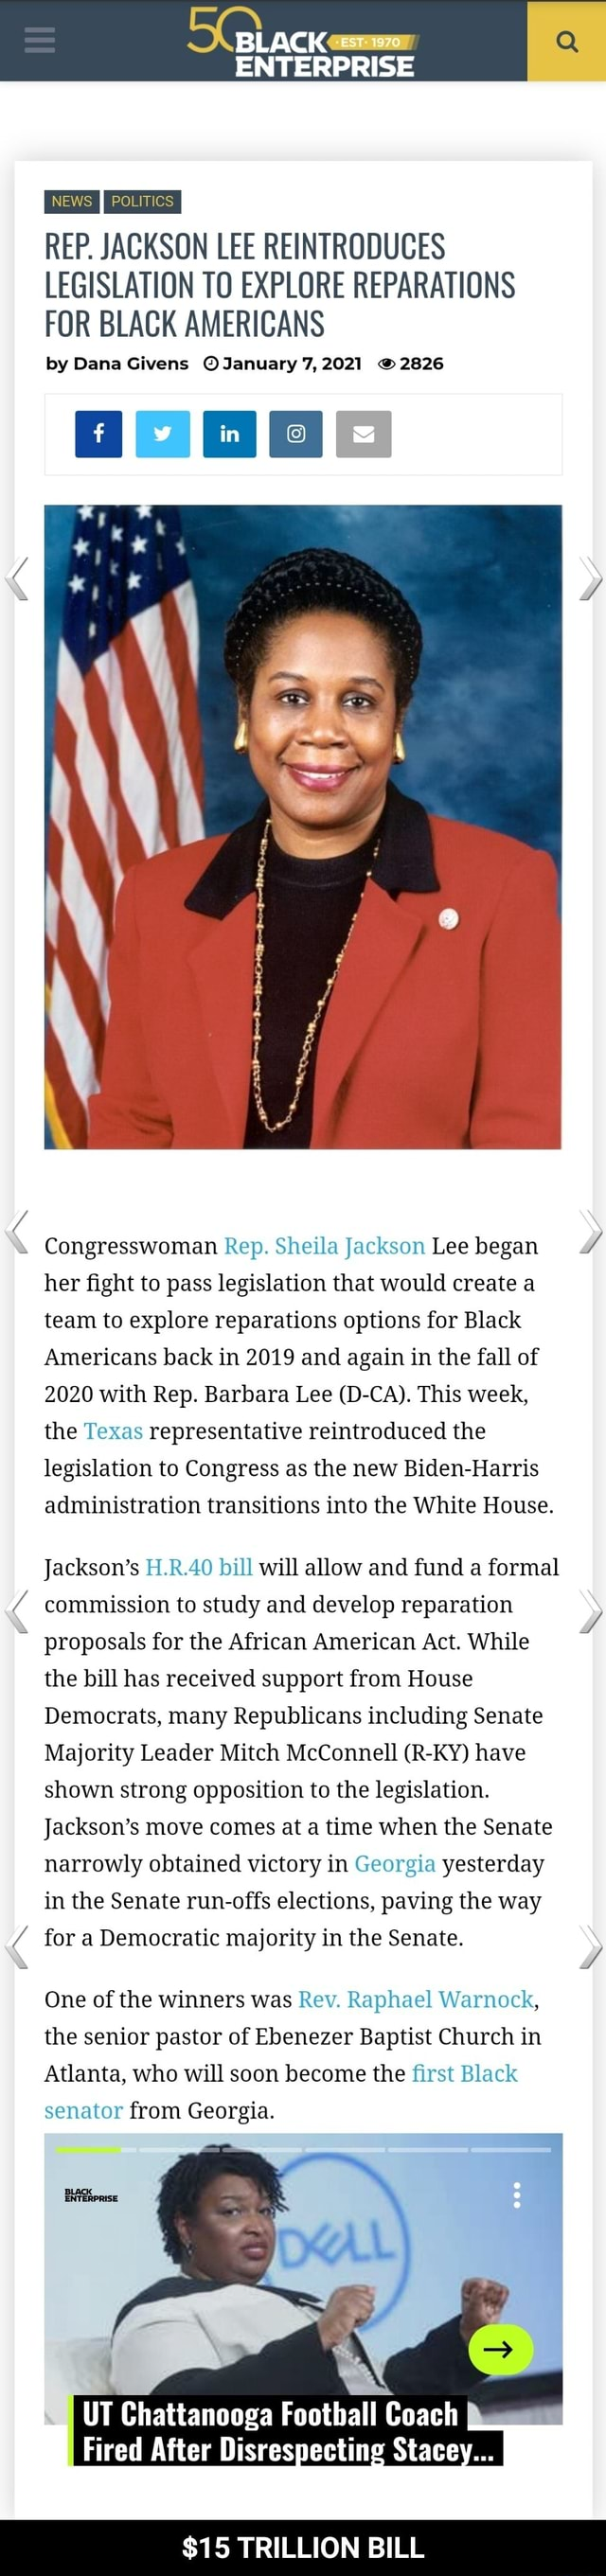 ENTERPRISE REP. JACKSON LEE REINTRODUCES LEGISLATION TO EXPLORE REPARATIONS FOR BLACK AMERICANS by Dana Givens January 7, 2021 2826 G Oo Congresswoman Rep. Sheila Jackson Lee began her fight to pass legislation that would create a team to explore reparations options for Black Americans back in 2019 and again in the fall of 2020 with Rep. Barbara Lee D CA. This week, the Texas representative reintroduced the legislation to Congress as the new Biden Harris administration transitions into the White House. Jackson's H.R.40 bill will allow and fund a formal commission to study and develop reparation proposals for commission the to African study and American develop Act. While reparation 4 the bill has received support from House Democrats, many Republicans including Senate Majority Leader Mit